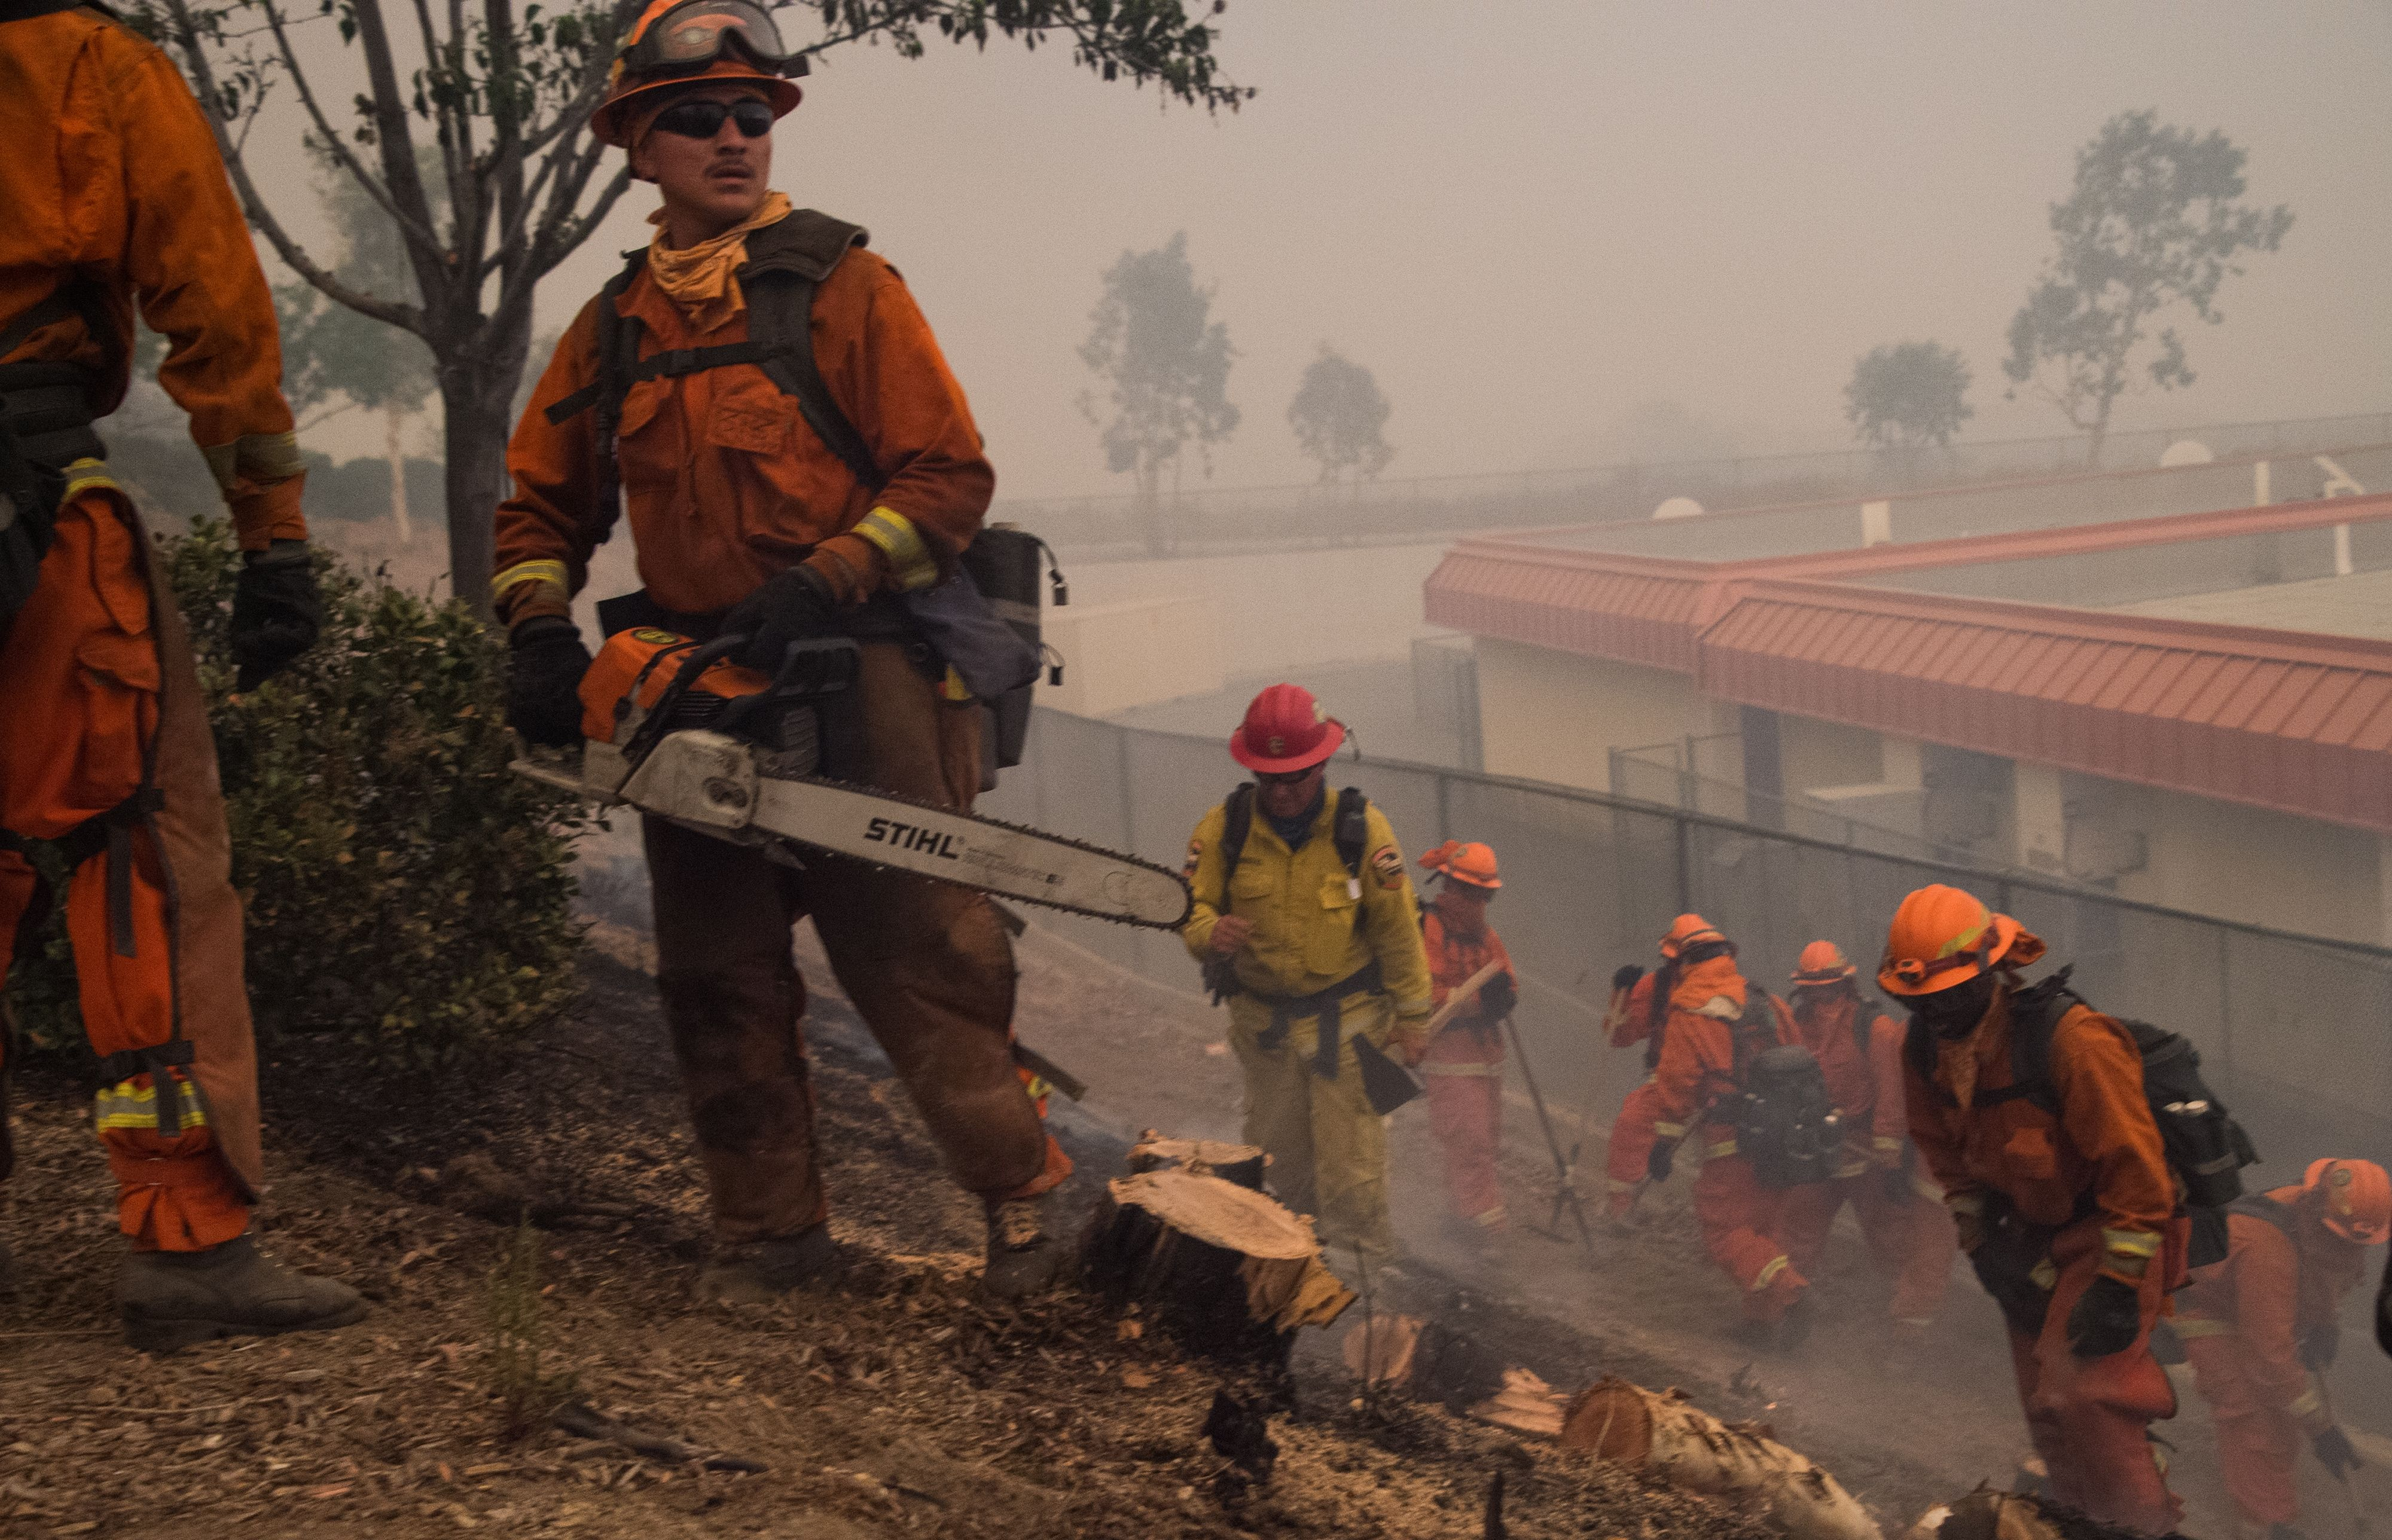 An inmate fire crew clears brush and puts out hotspots to protect an elementary school that almost caught fire at the Holy Fire in Lake Elsinore, California, southeast of Los Angeles, on August 9, 2018. - A man suspected of intentionally starting the Holy Fire on August 6 in the nearby Cleveland National Forest was charged August 9 with multiple felony counts involving arson. (Photo by Robyn Beck / AFP)